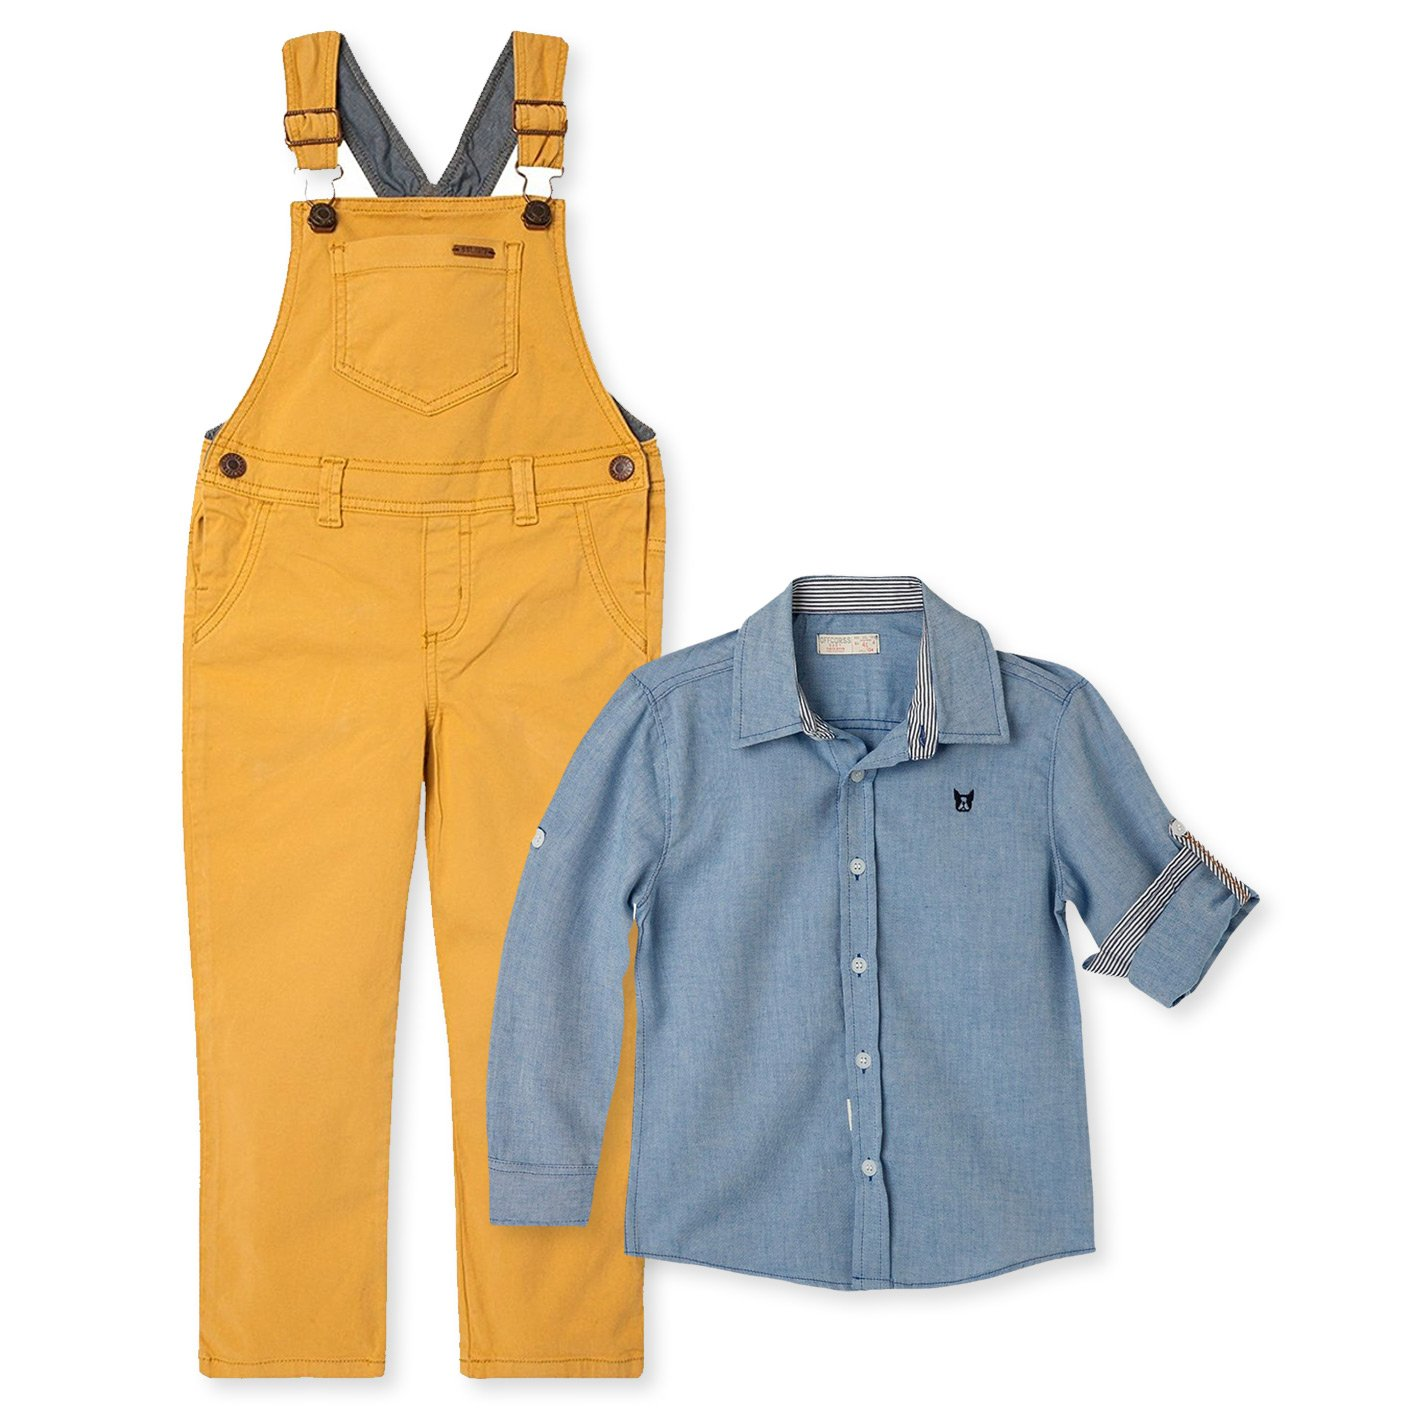 OFFCORSS Toddler Boy Kid Infant Bib Matching Brother Twin Jean Denim Cotton Cute Long Overalls Shirt Set Overol Para Niños Yellow 3T